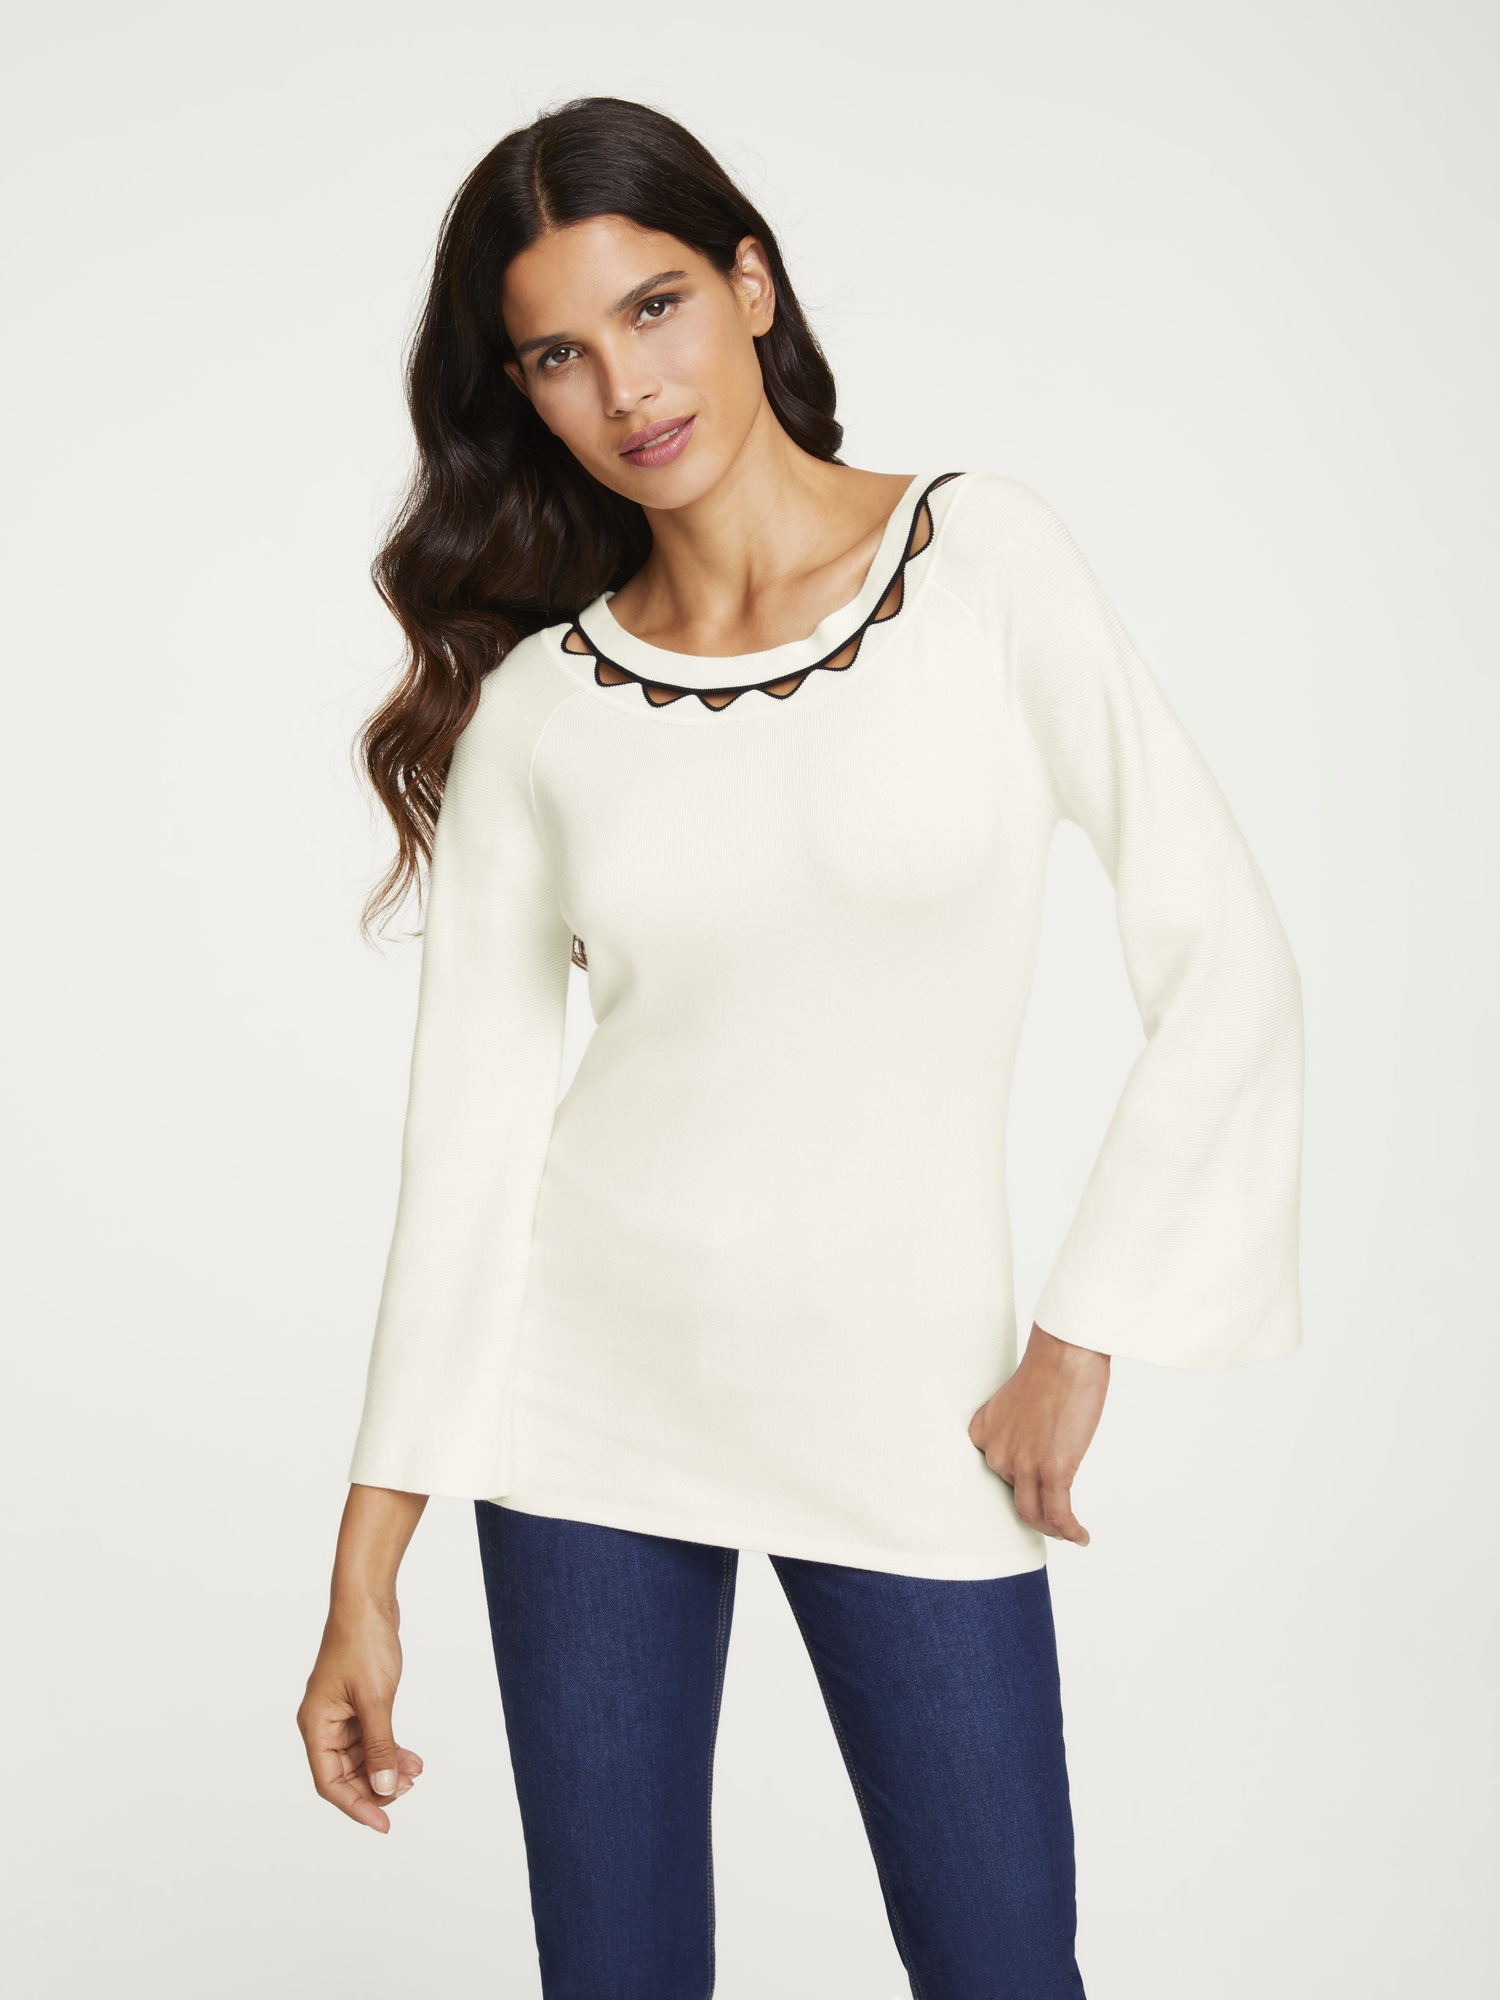 Image of ASHLEY BROOKE by Heine 3/4 Arm-Pullover, mit Cut-Outs